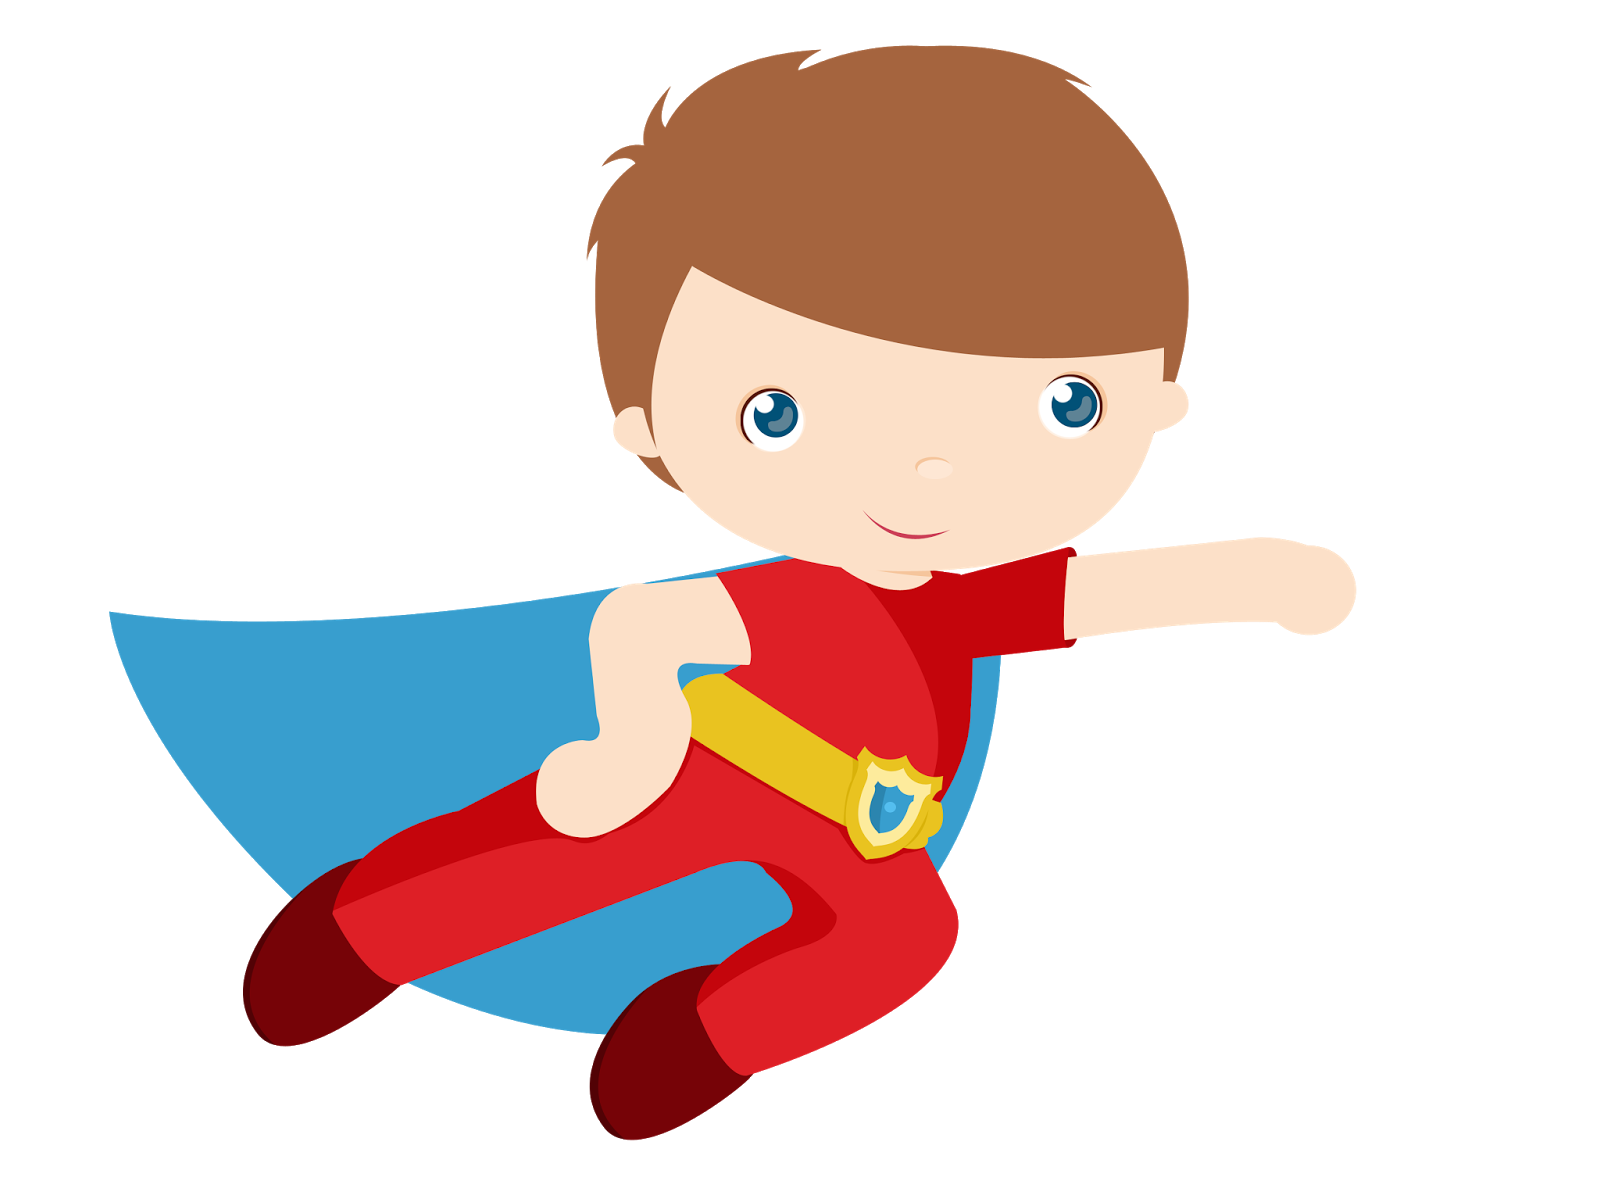 kids dressed as superheroes clipart oh my fiesta for geeks rh forgeeks ohmyfiesta com superhero clipart download superhero clipart alphabet